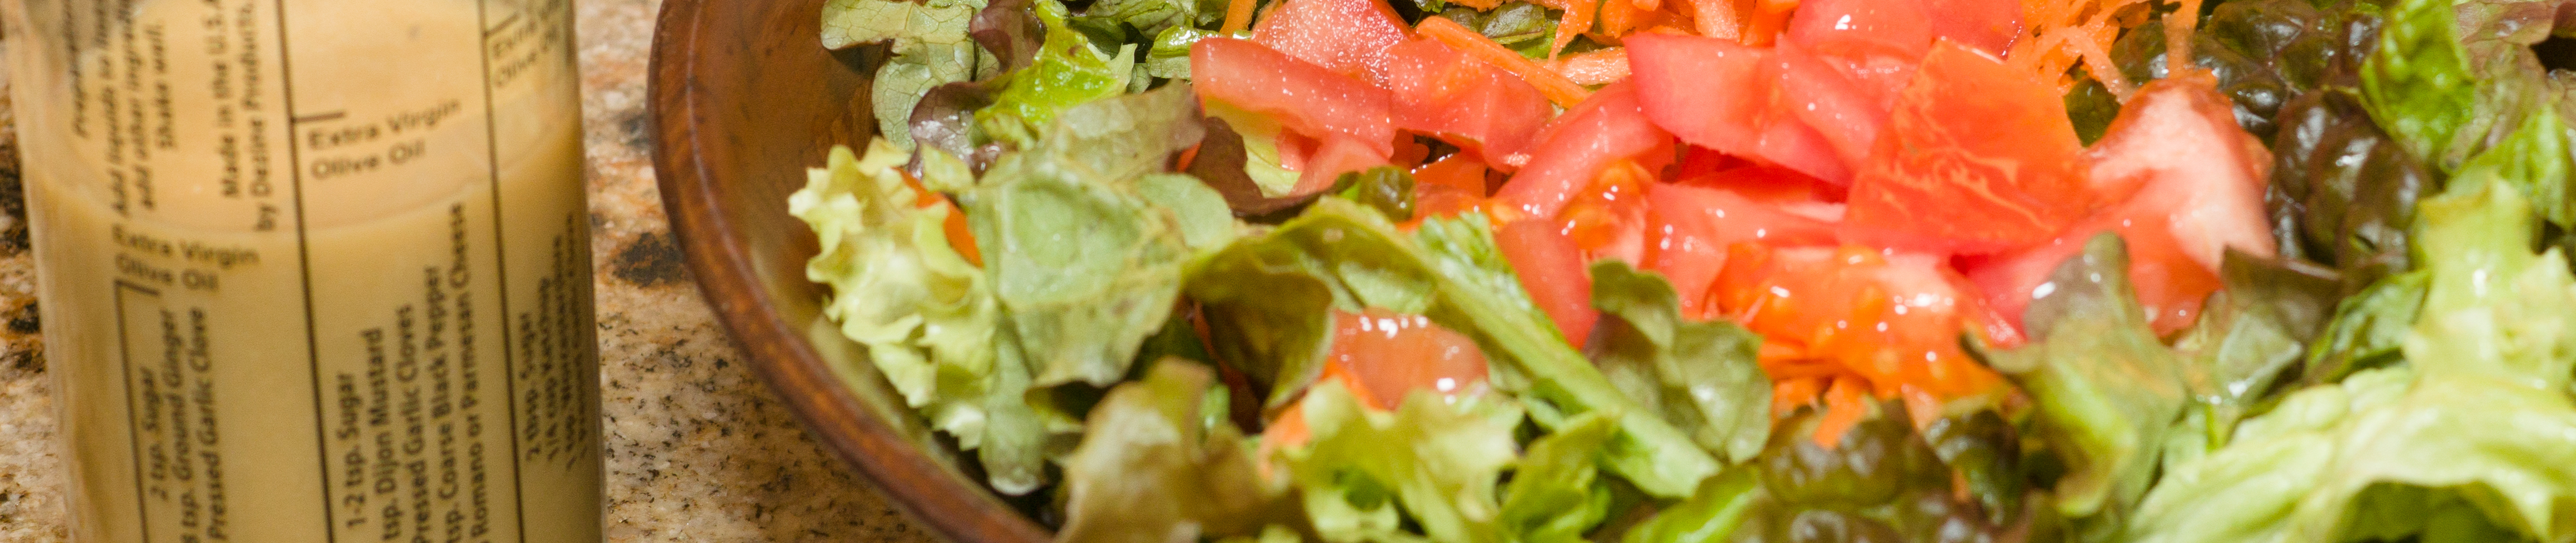 Miso-ginger salad dressing banner photo